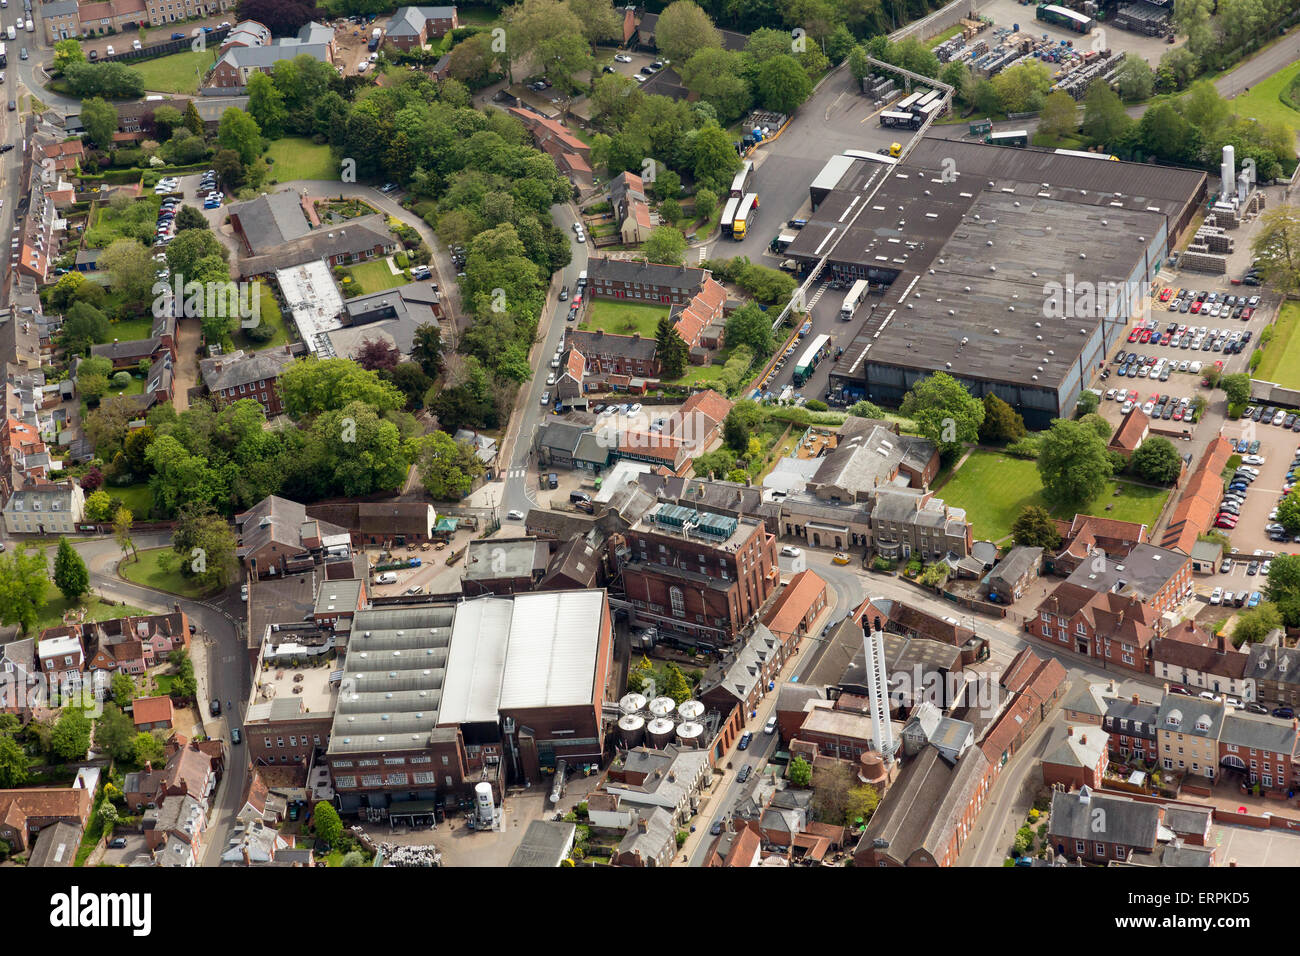 The Greene King brewery and packaging buildings in Bury St Edmunds, Suffolk, UK - Stock Image